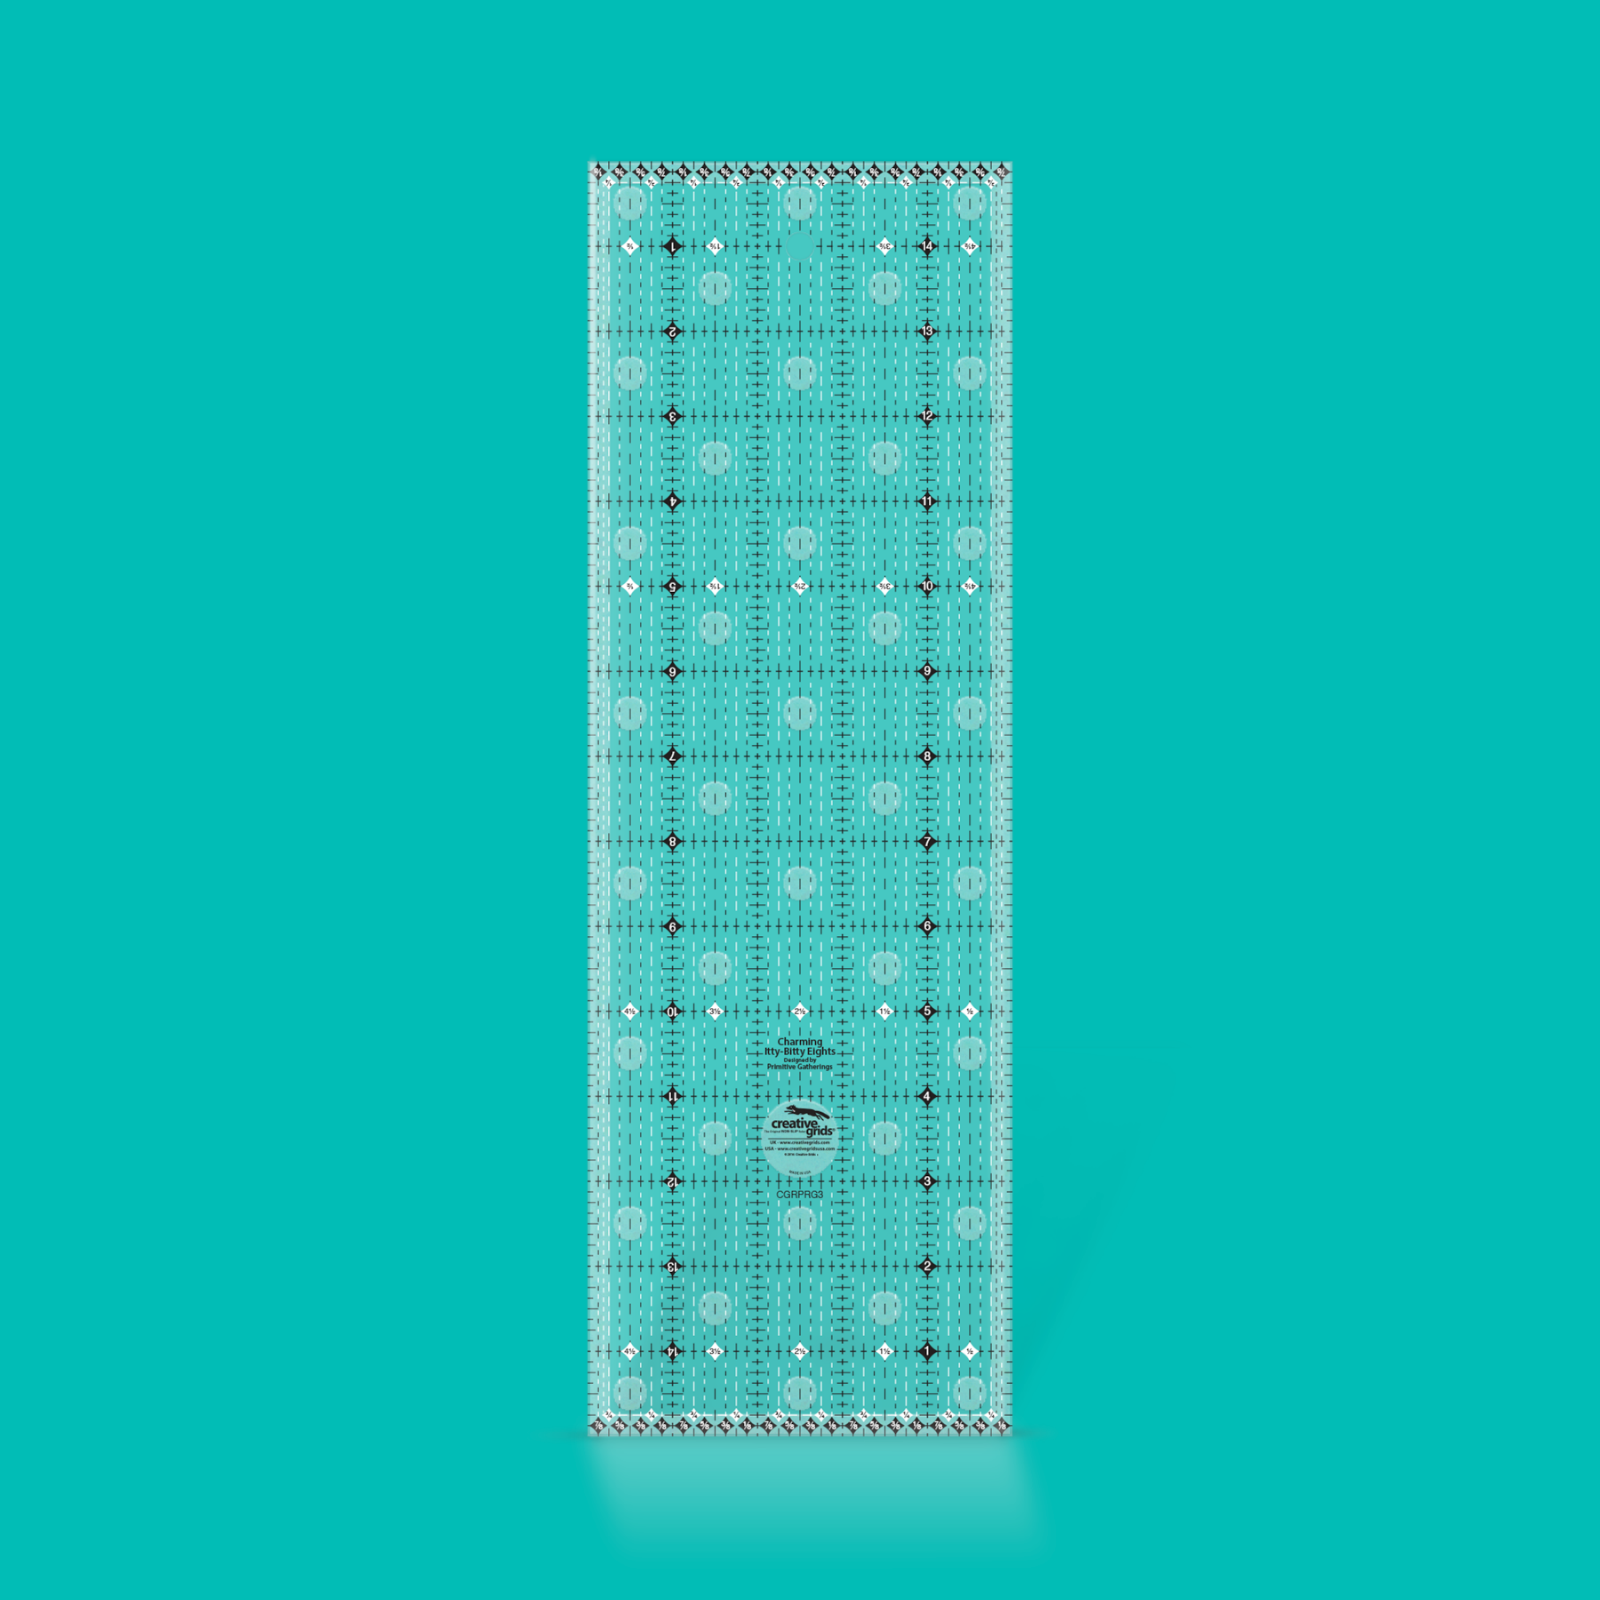 Creative Grids Charming Itty Bitty Eights CGRPRG3